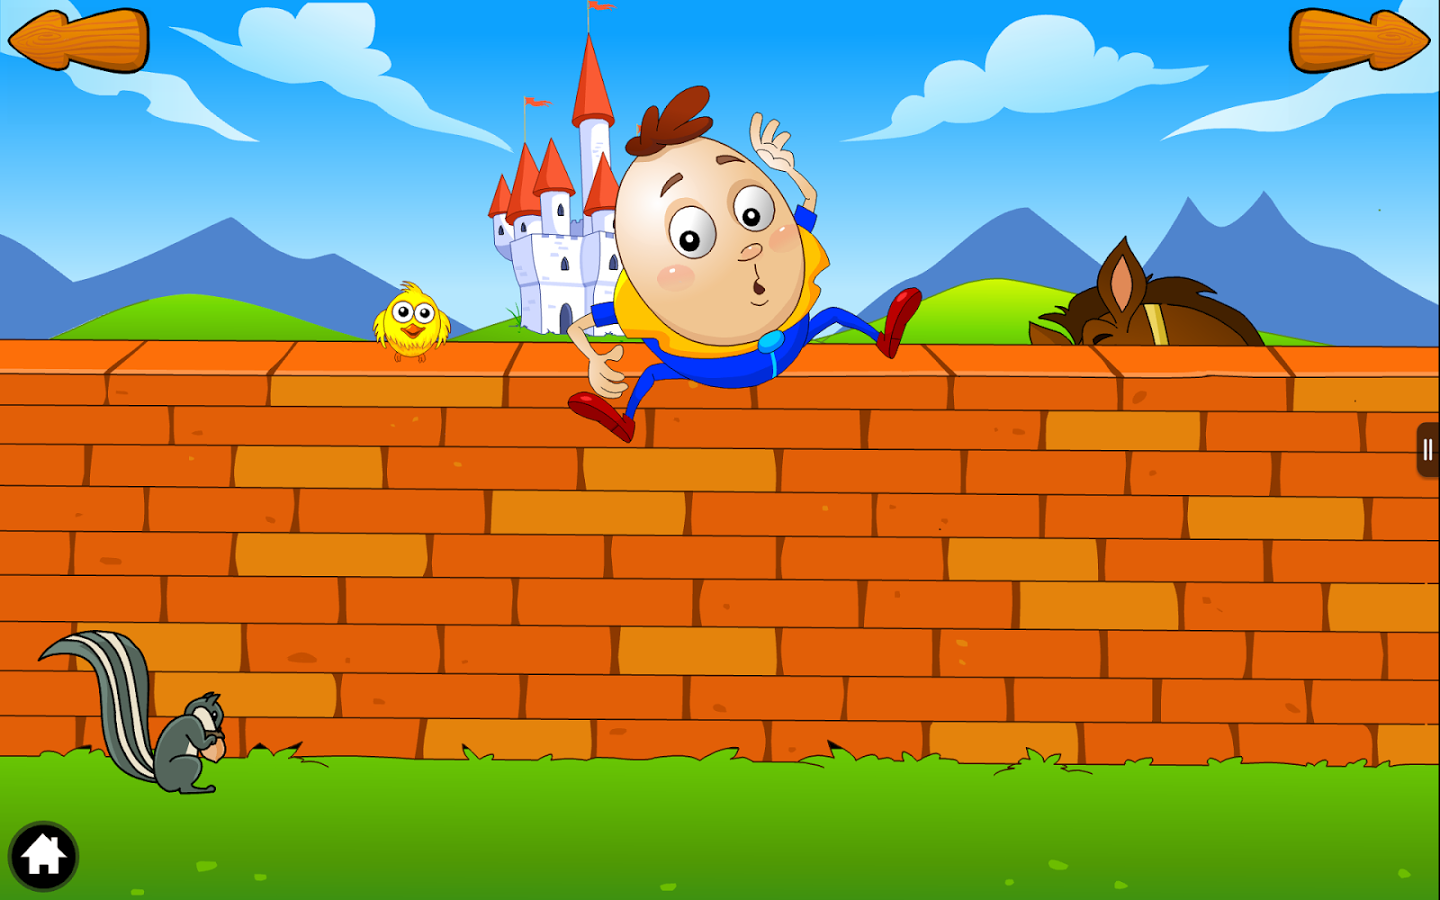 Humpty dumpty sitting on a wall clipart png library Free Humpty Dumpty, Download Free Clip Art, Free Clip Art on Clipart ... png library